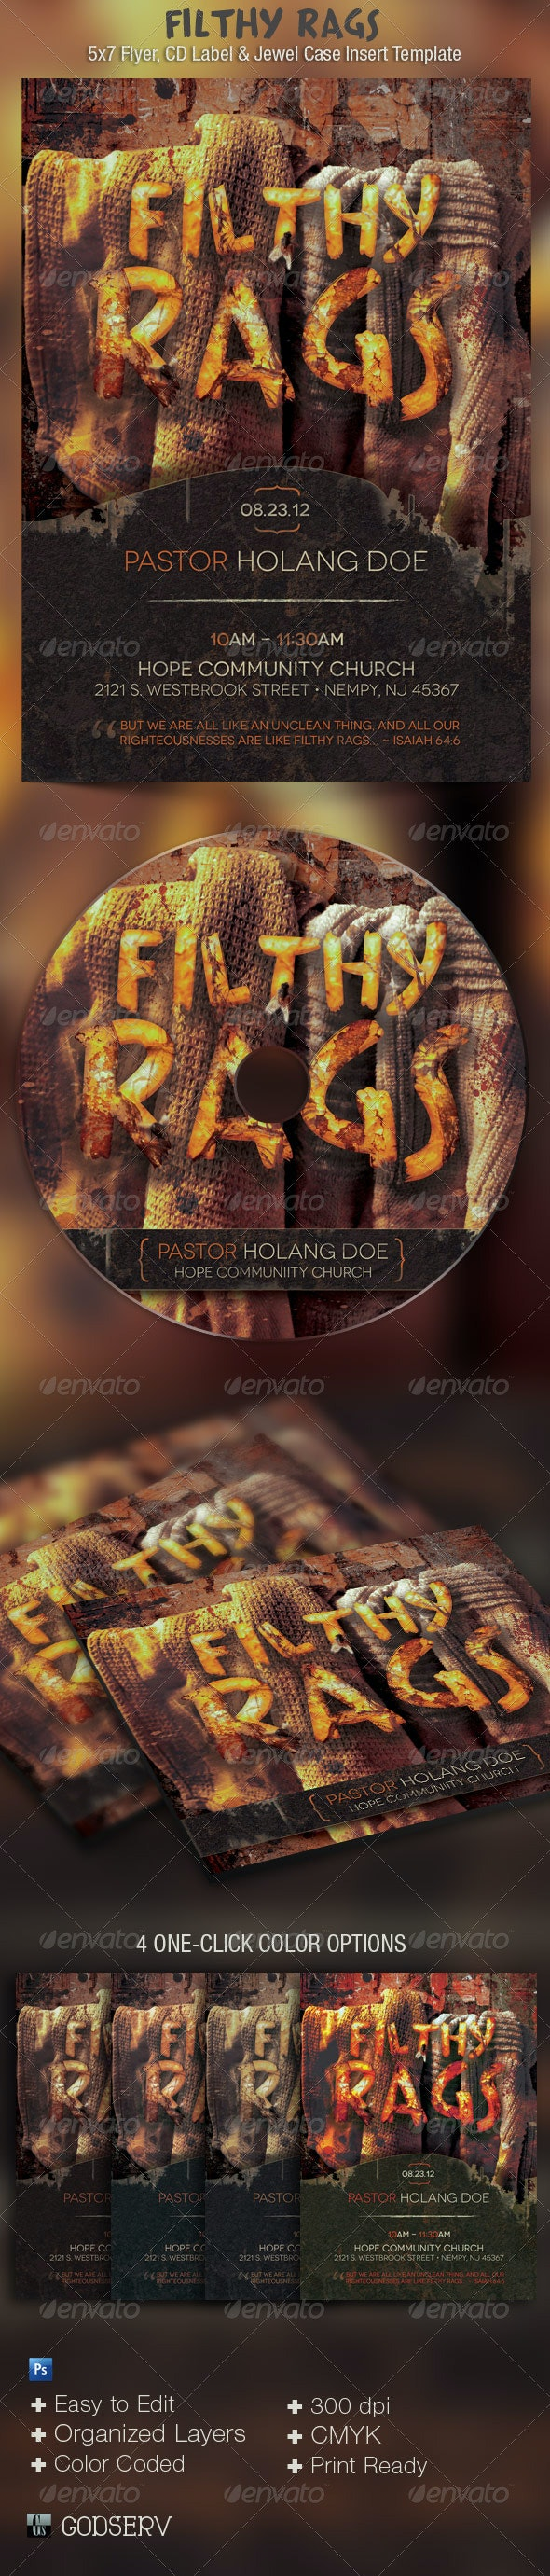 Filthy Rags Flyer CD Template - Church Flyers